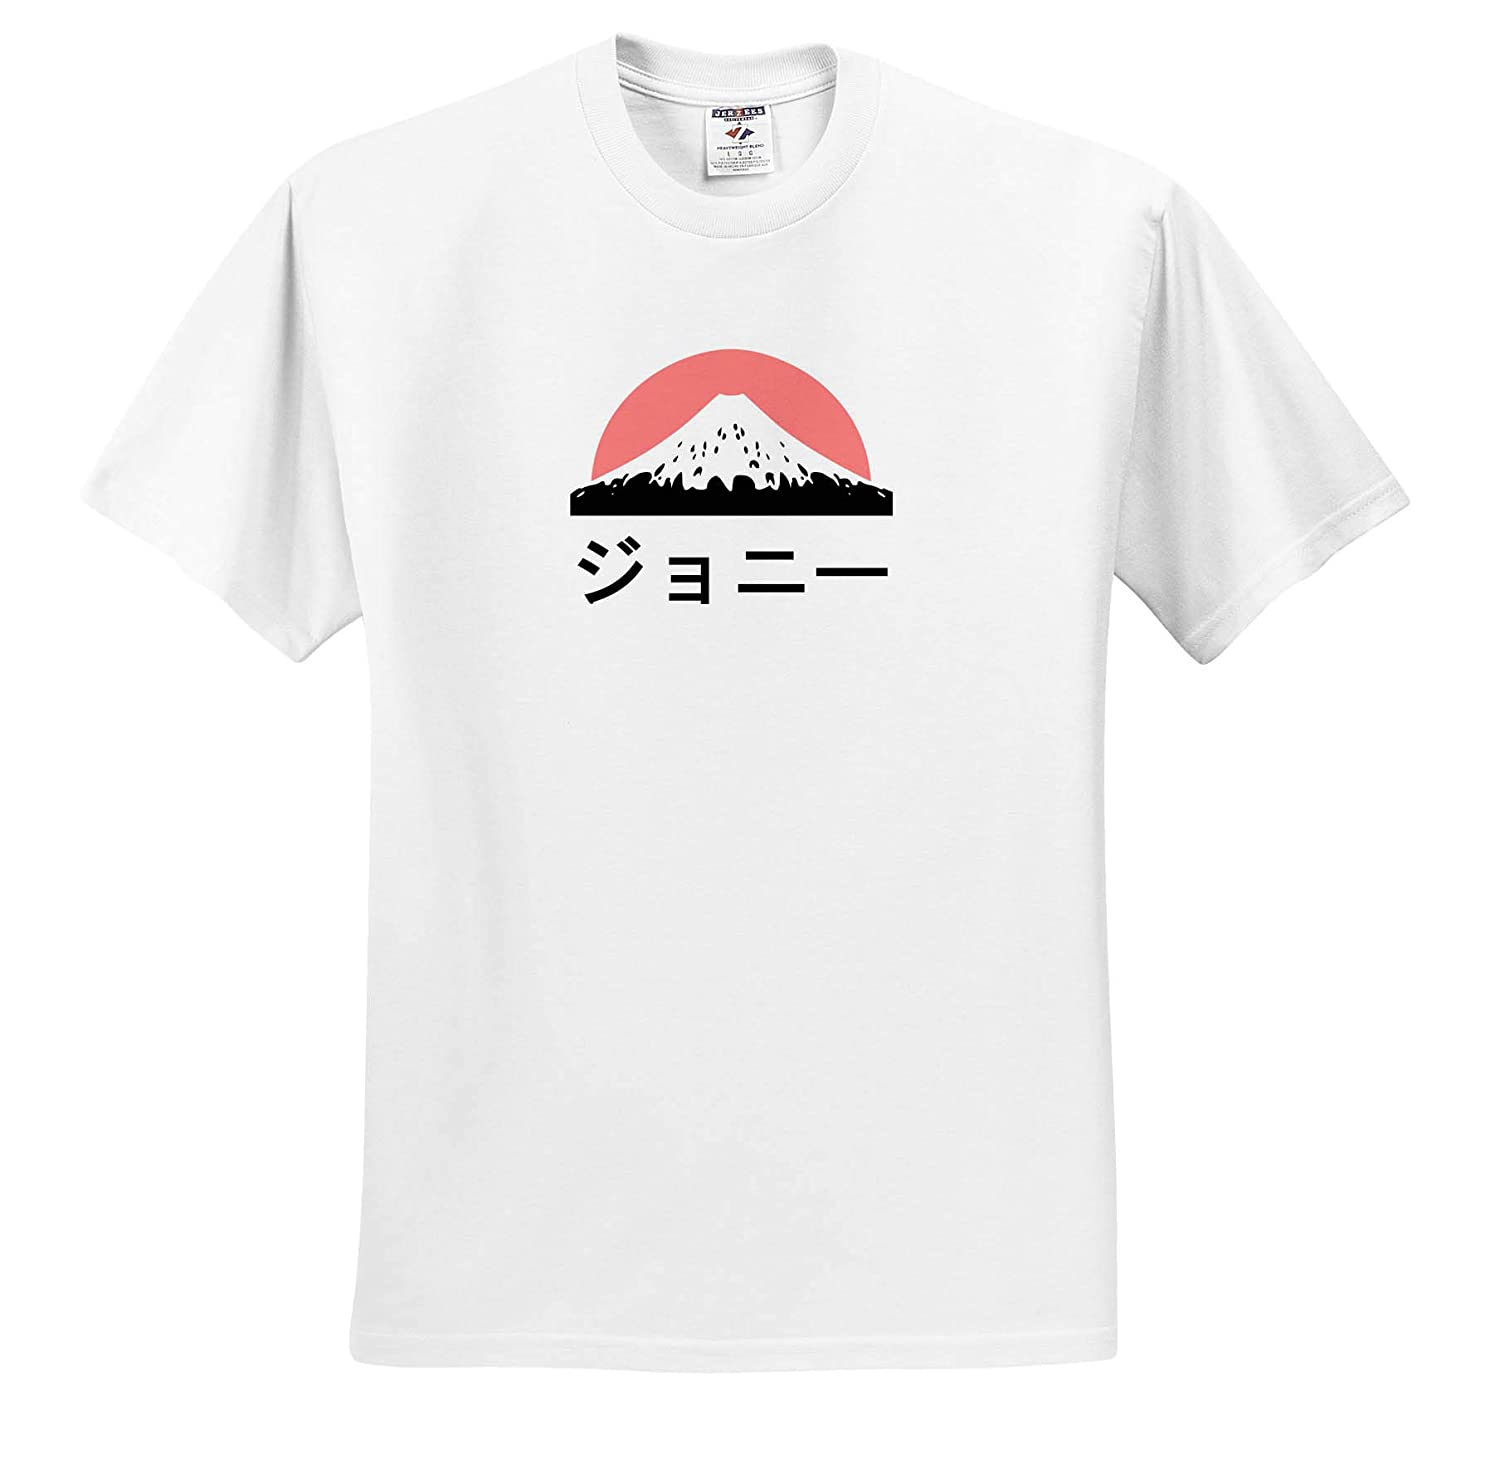 Name in Japanese ts/_320548 3dRose InspirationzStore Johnny or Jonny in Katakana Letters Adult T-Shirt XL